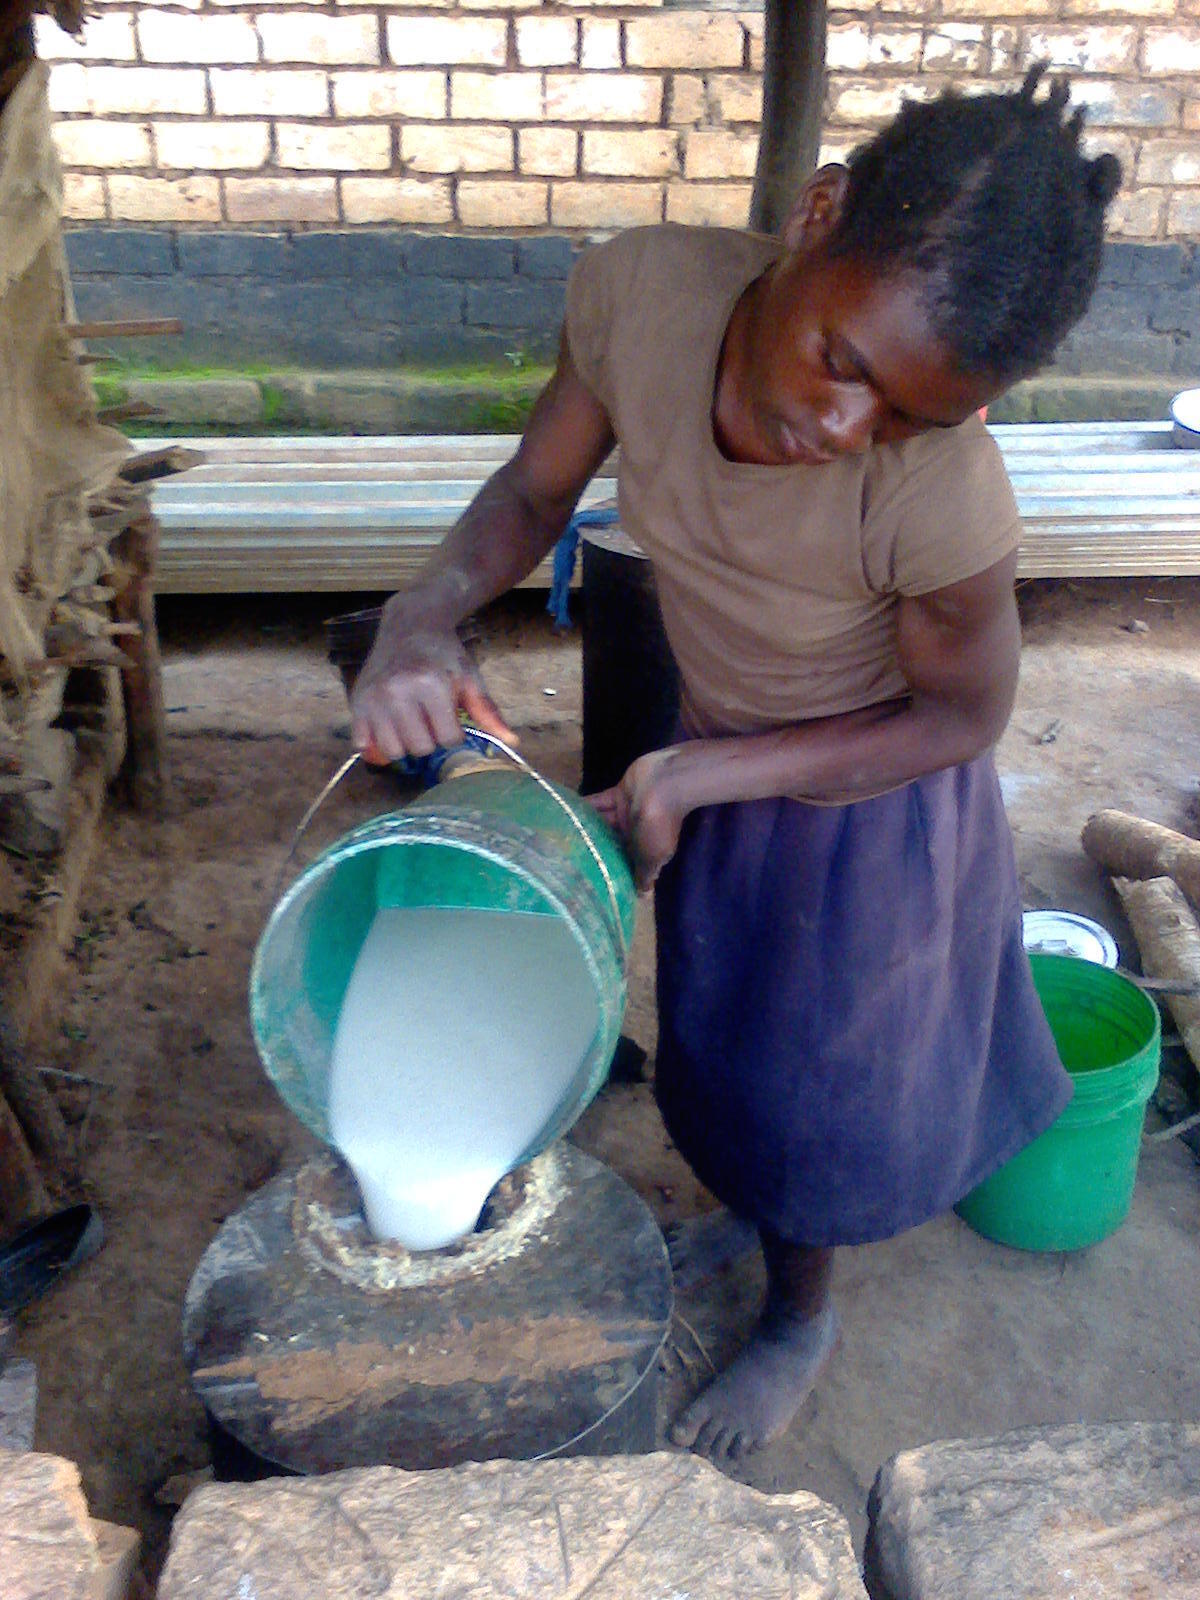 Girl brewing local beer in rural Zambia